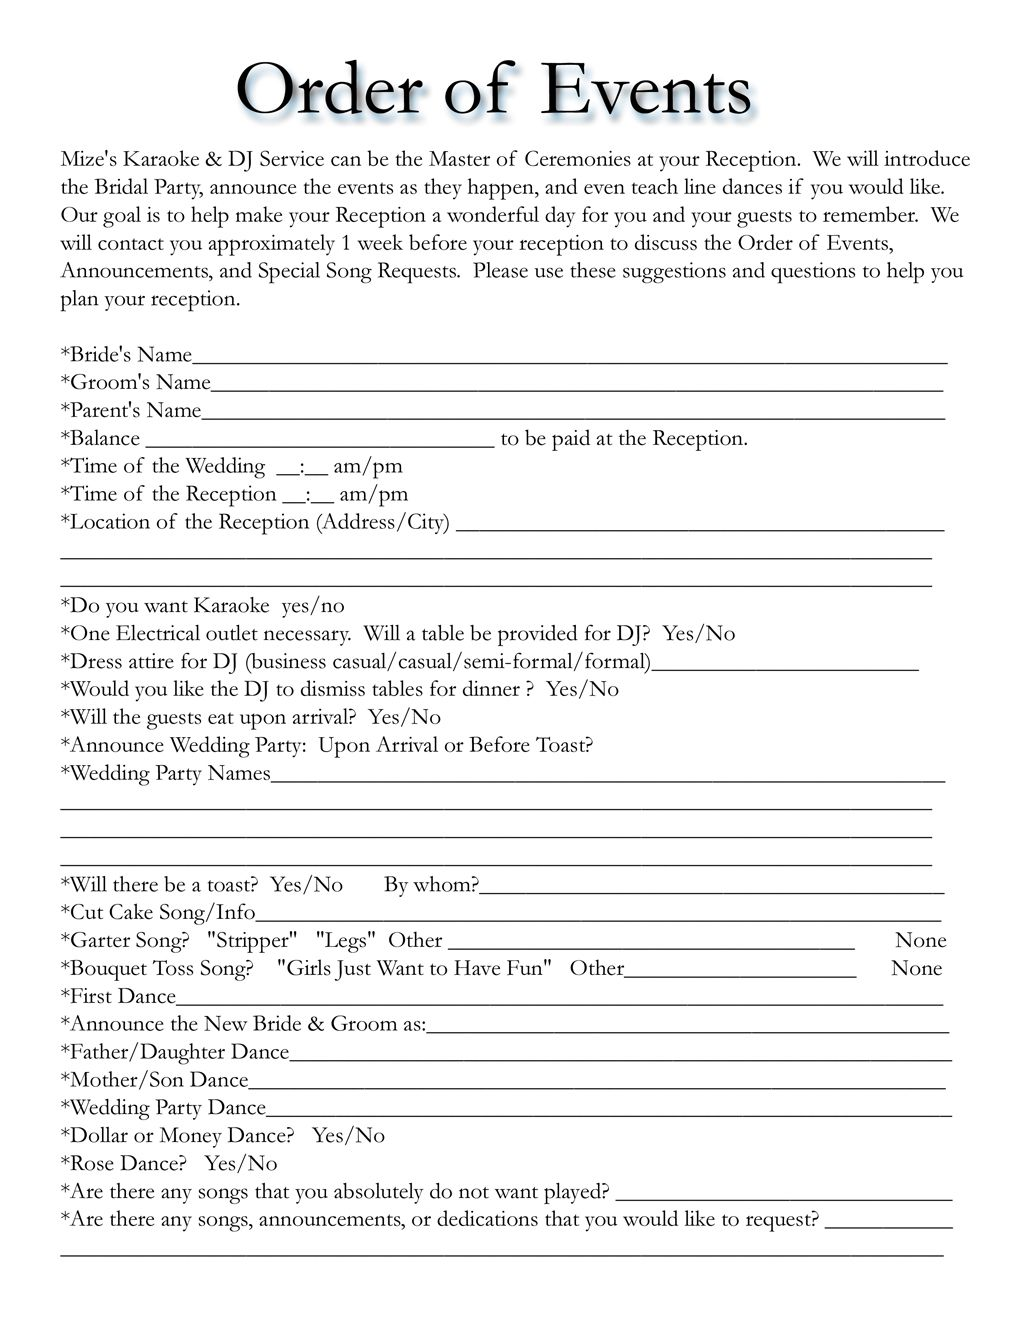 Wedding Itinerary Templates Free Wedding Template Projects To - Wedding day itinerary template